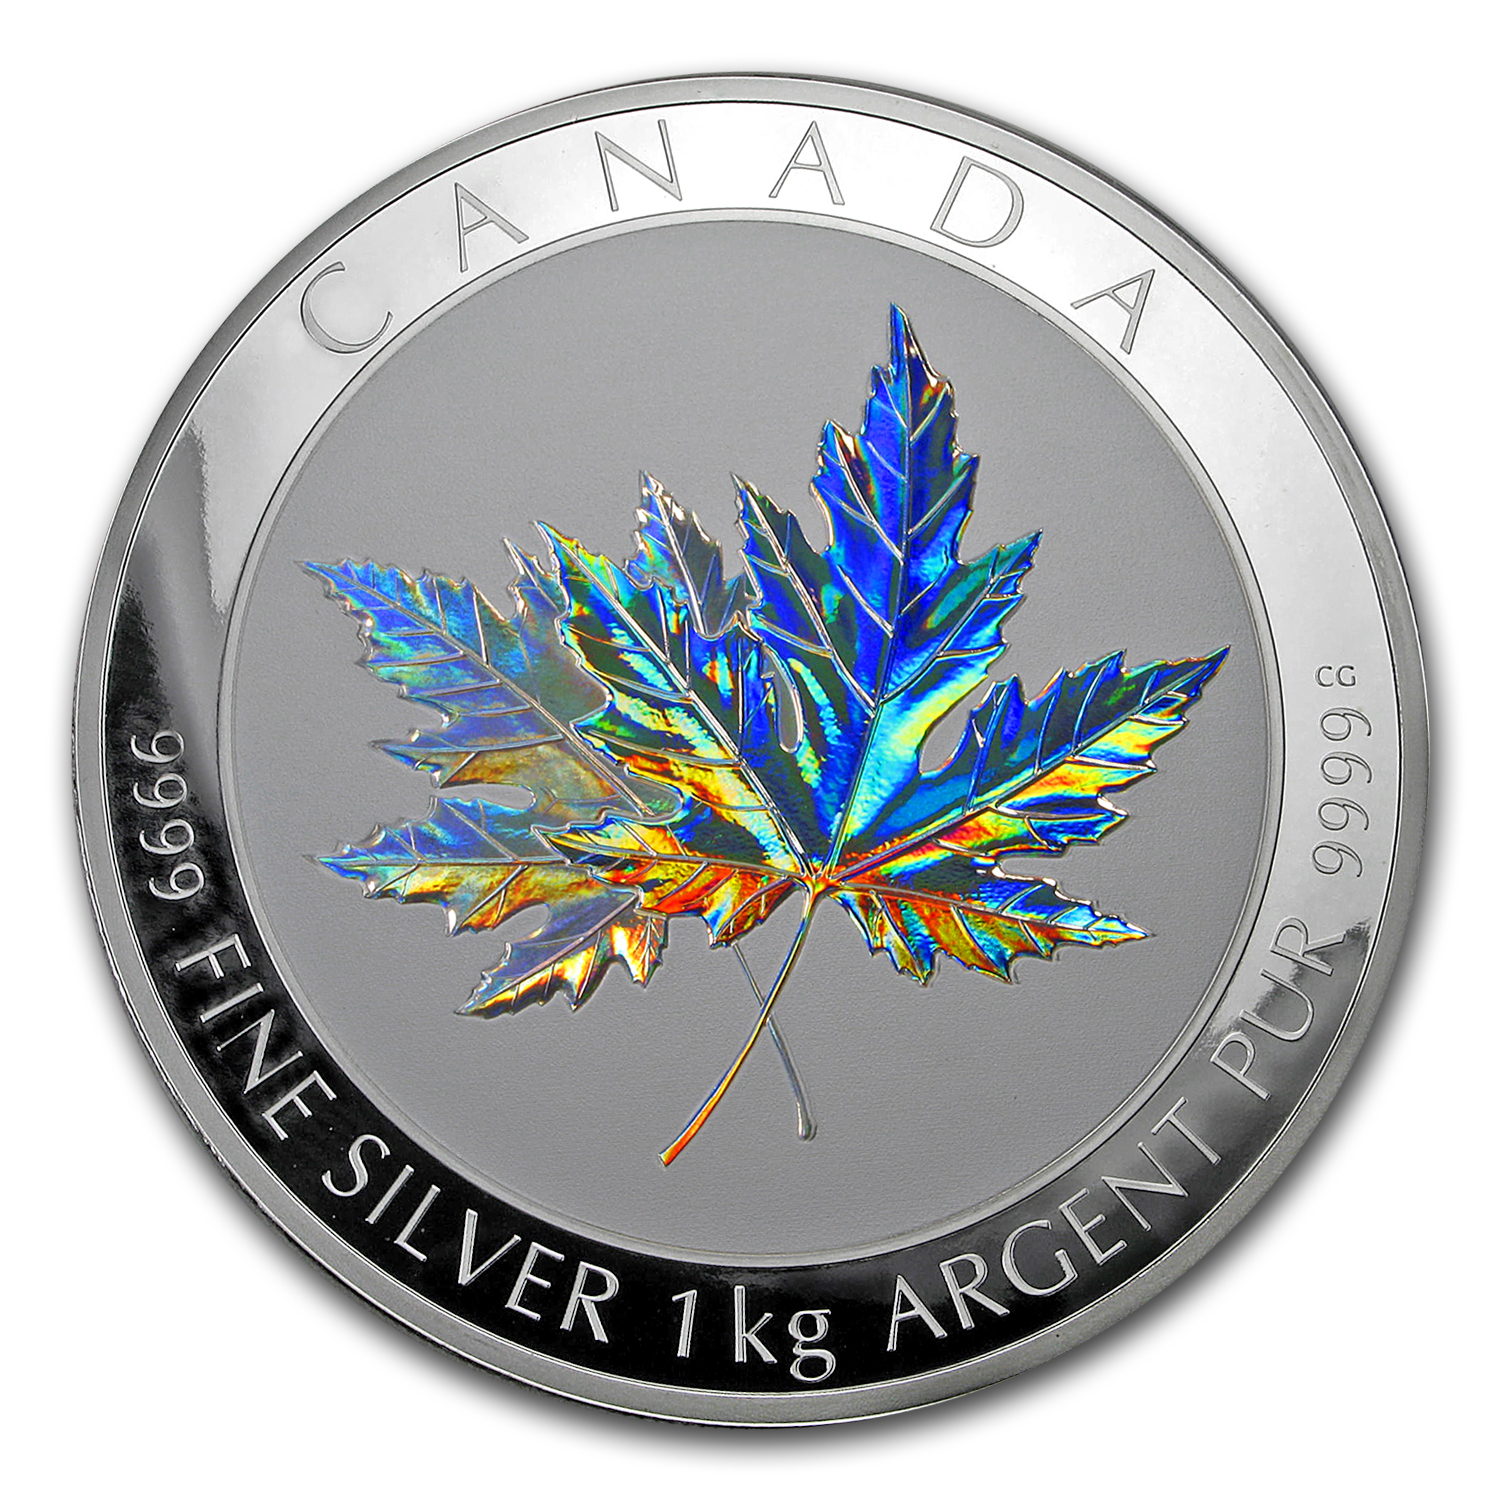 2015 Canada 1 kilo Silver $250 Maple Leaf Forever (Capsule Only)